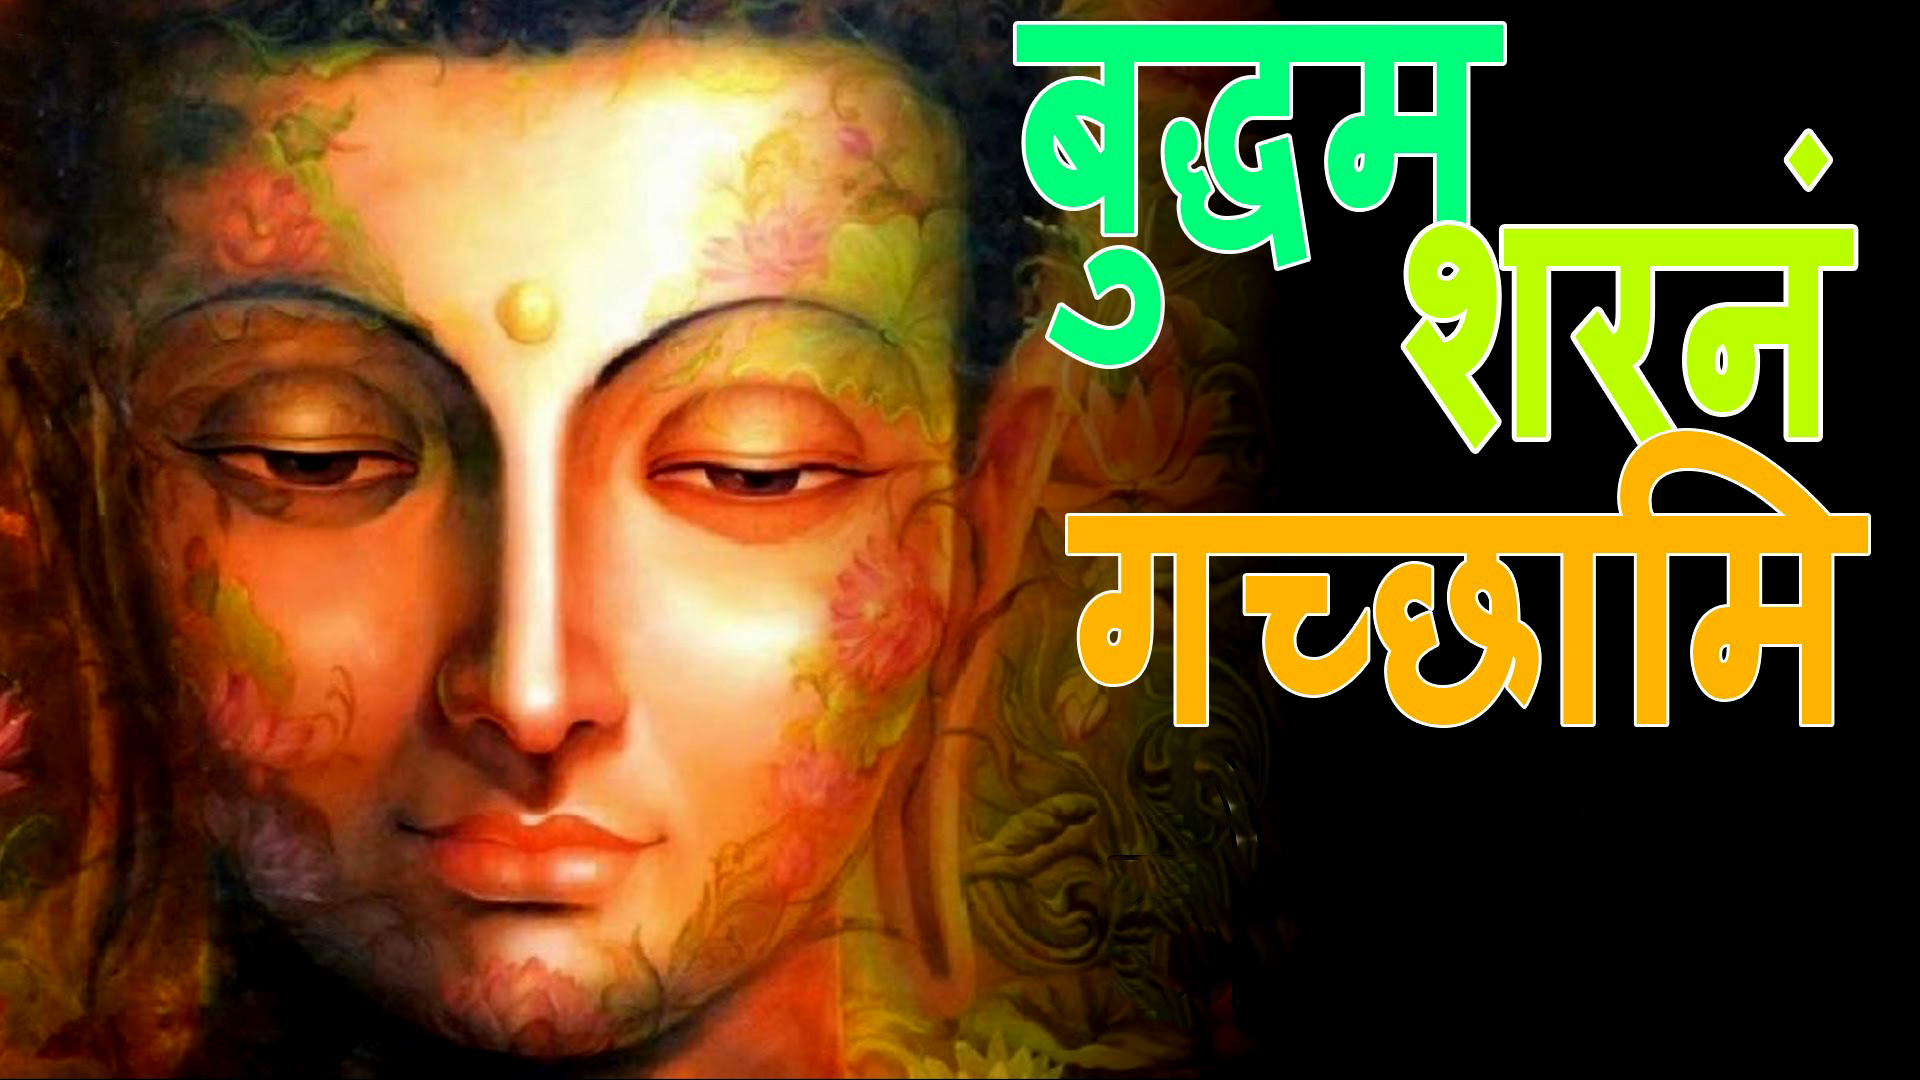 Lord Buddha Images Desktop Background Laptop Mobile Iphone